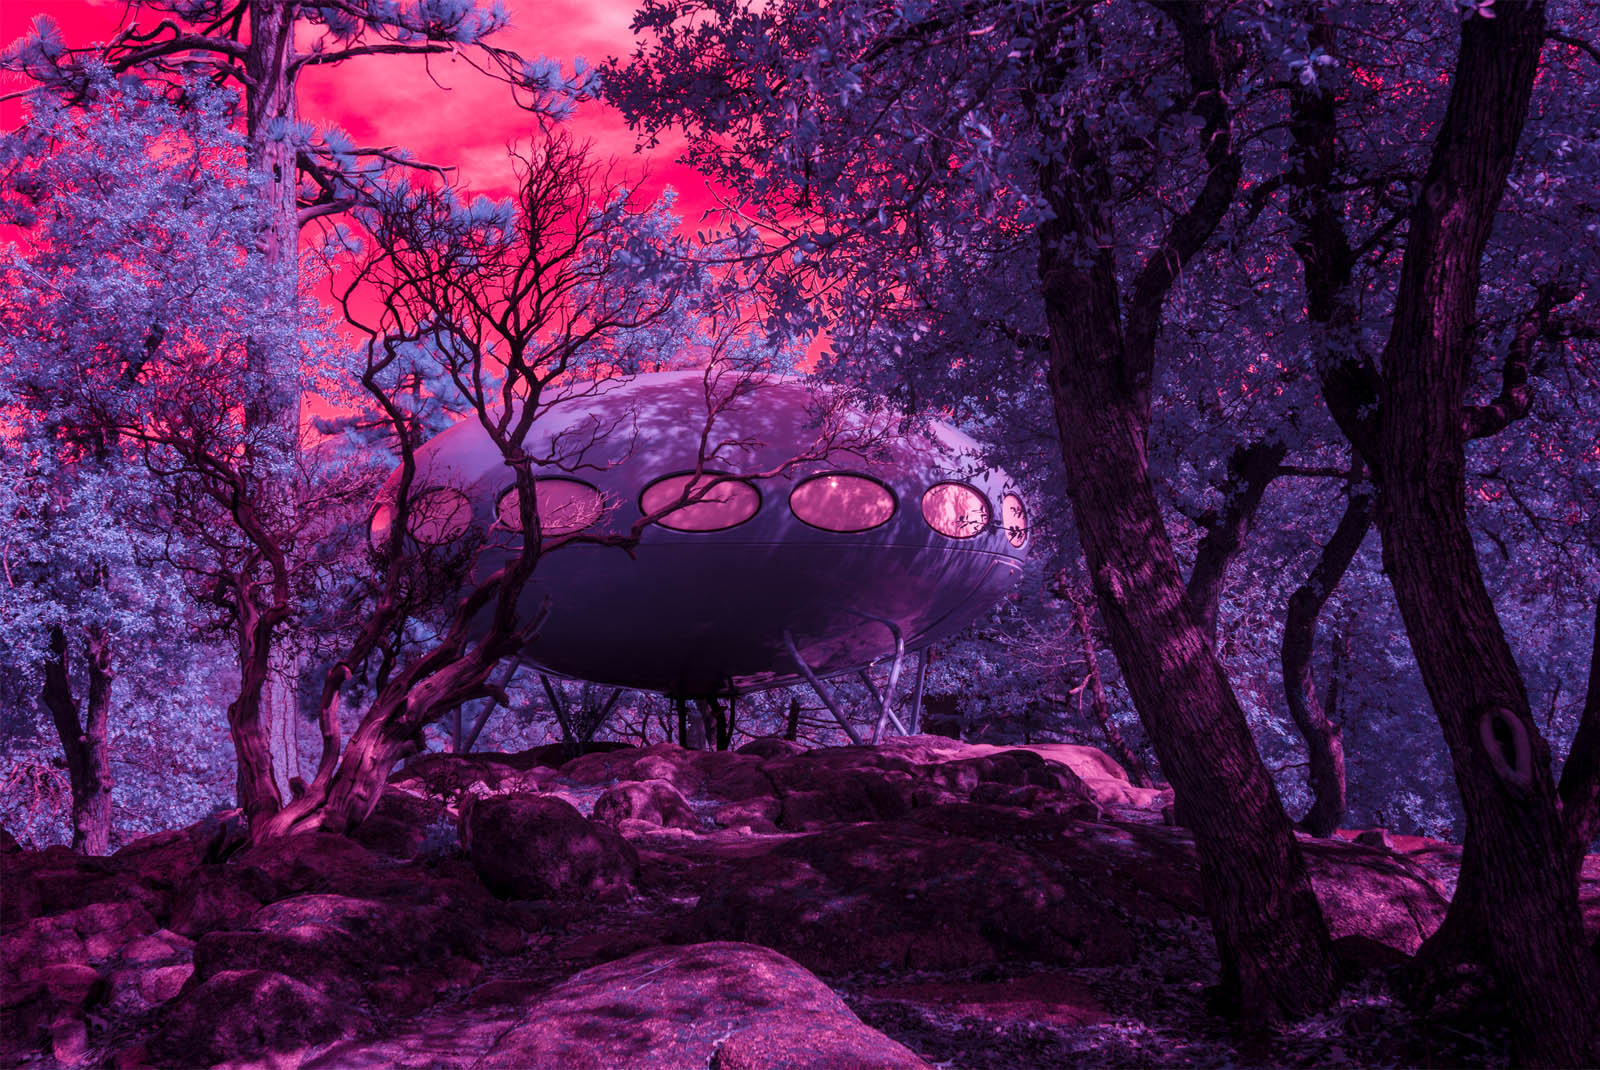 Infrared photograph of a spaceship=like Futuro House in the forest near Idyllwild